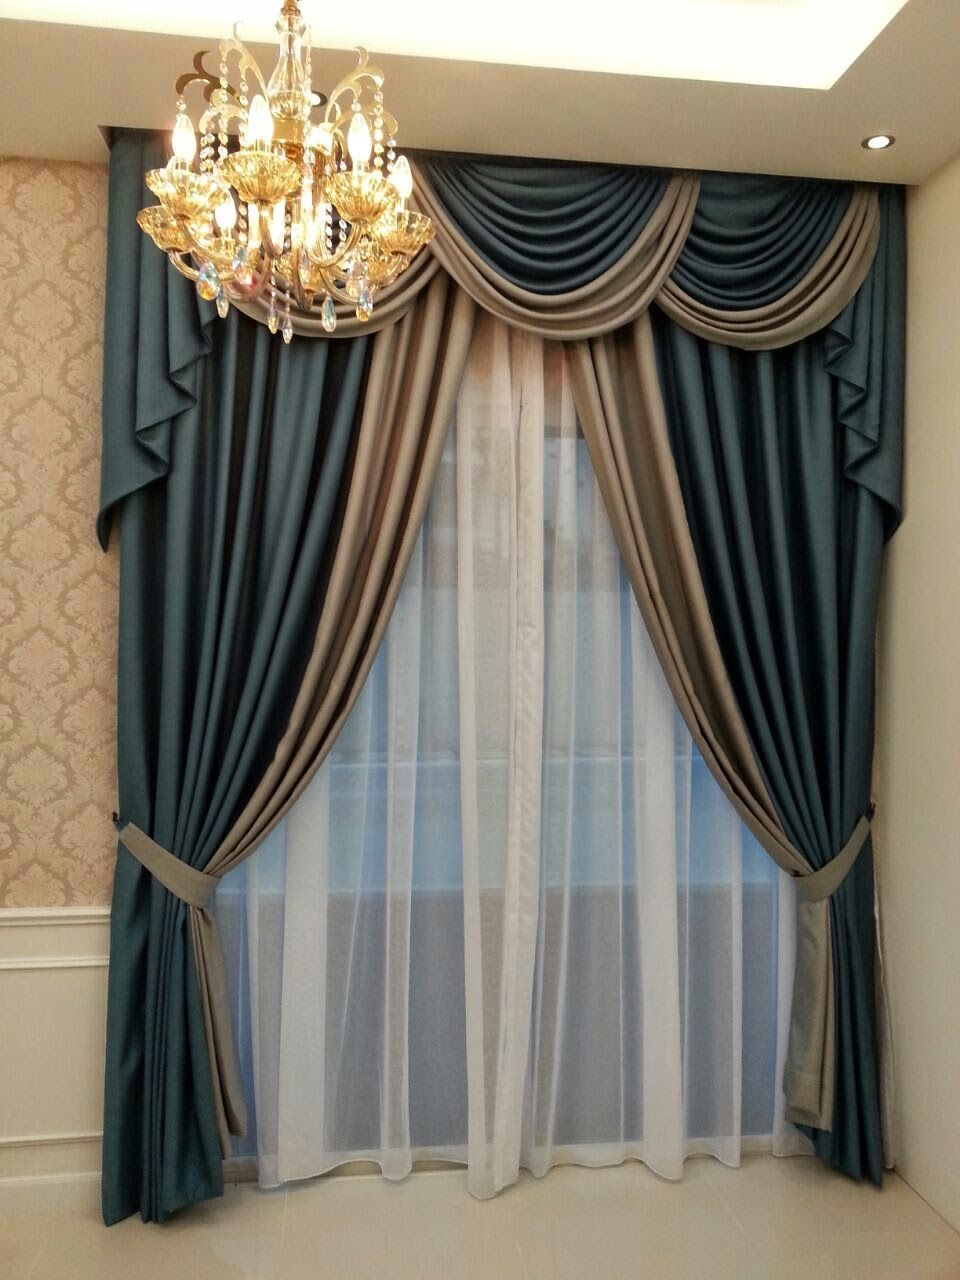 Curtain Patio CurtainsLiving Room Curtain